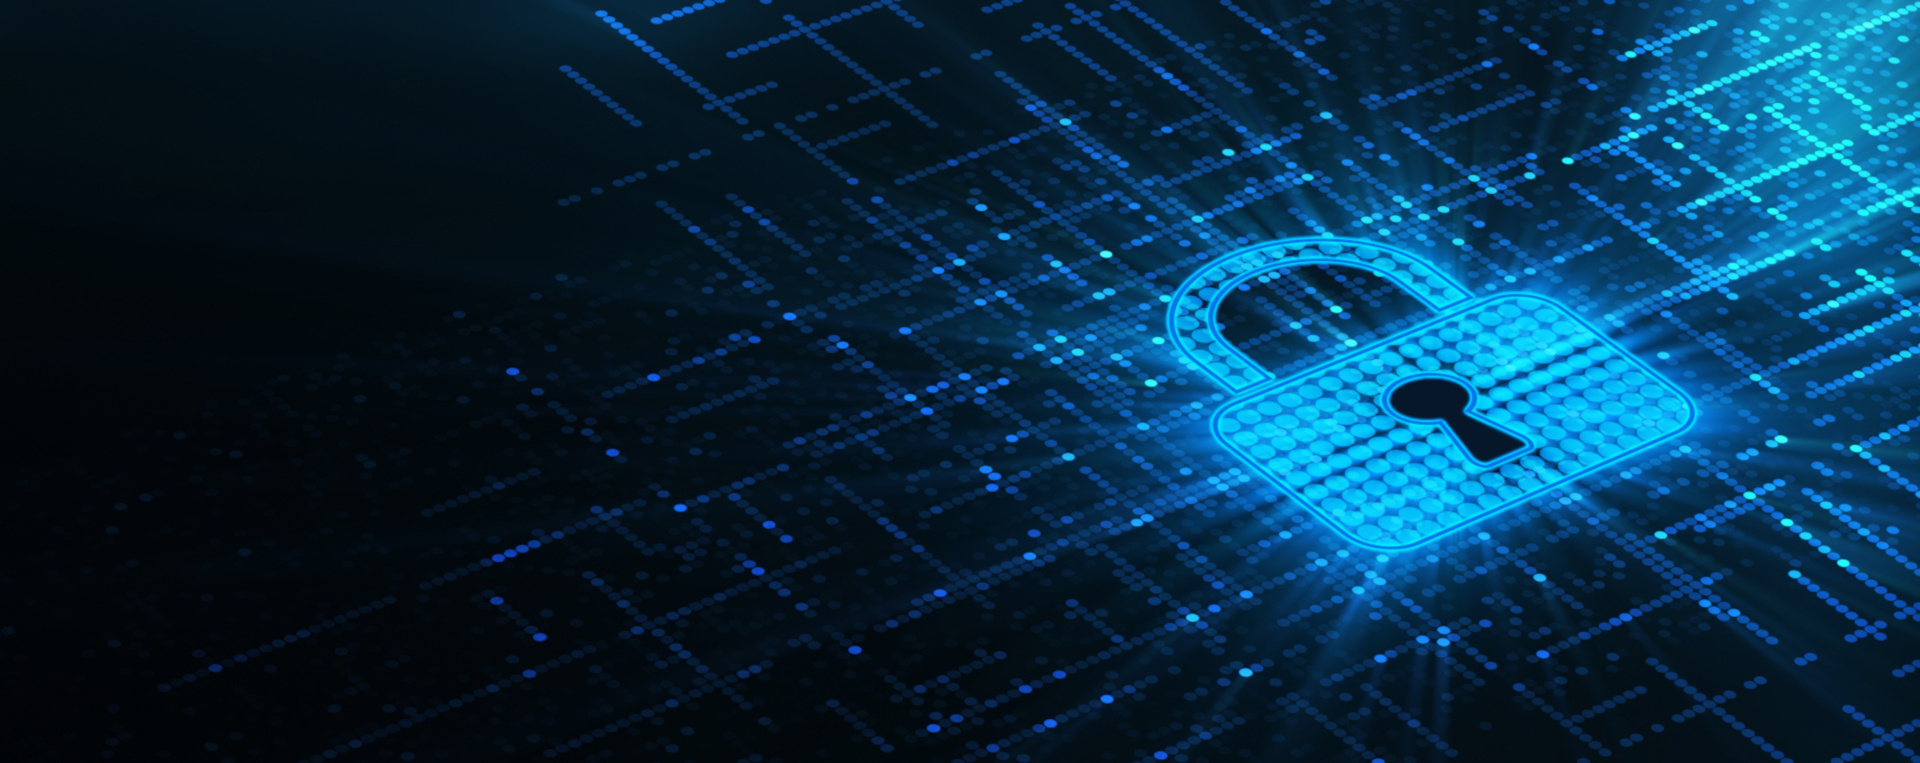 Oxford Systems provides the key that solves your cyber security challenges